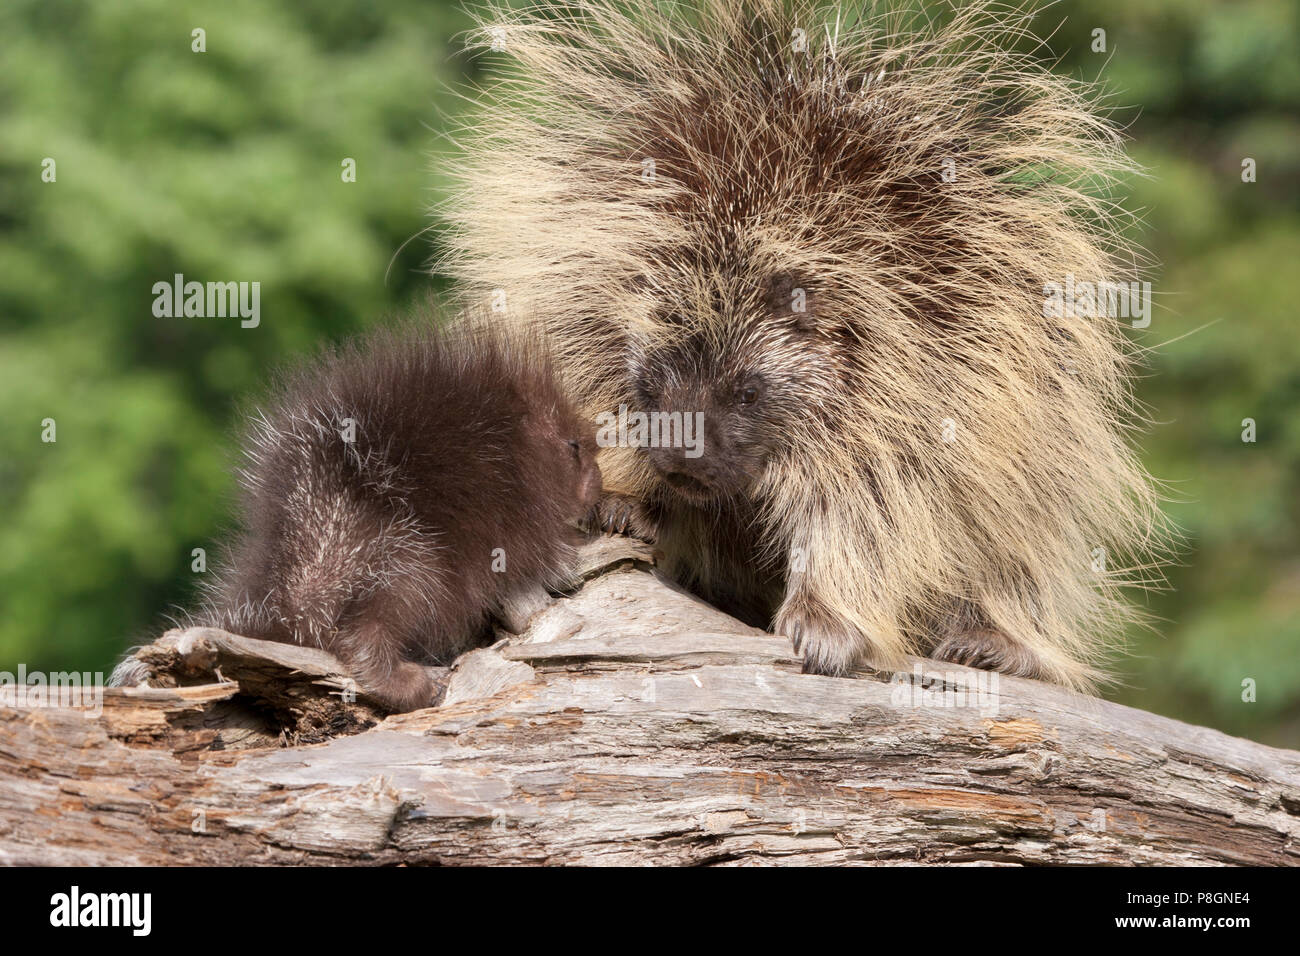 Porcupine Mother and Baby - Stock Image